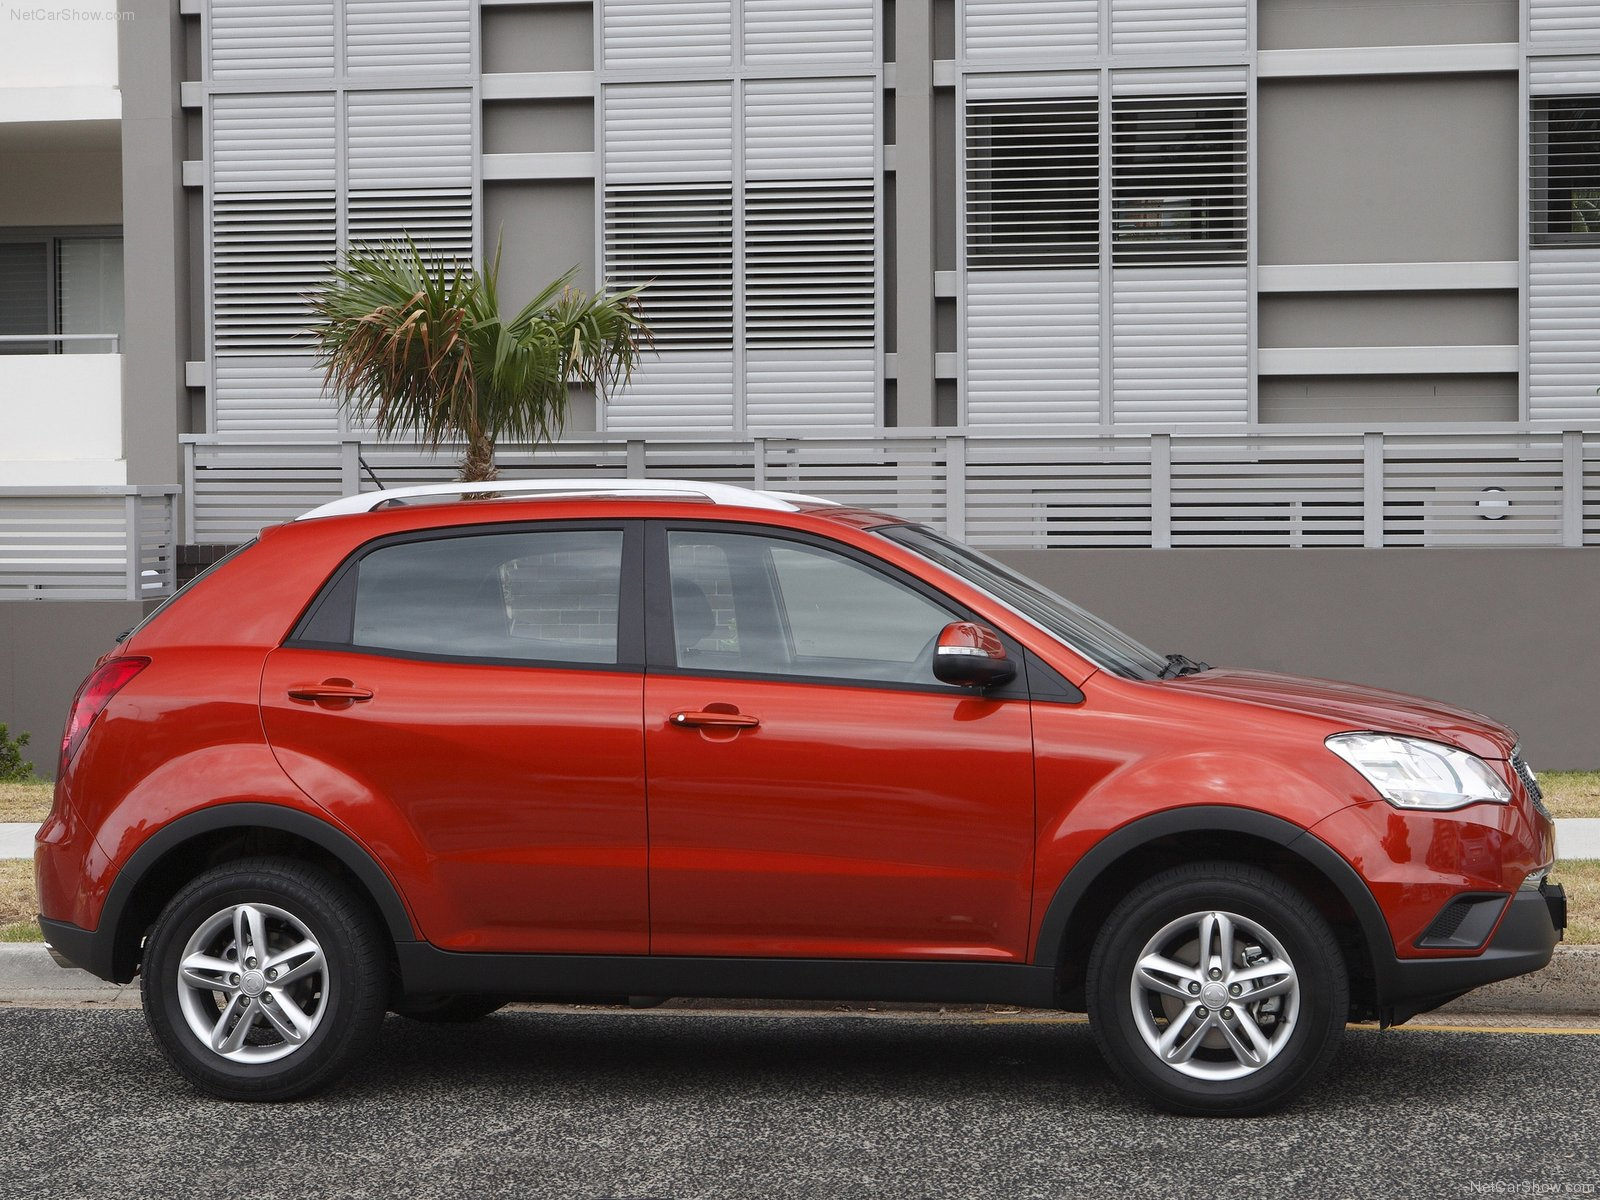 SsangYong Korando photo 78283